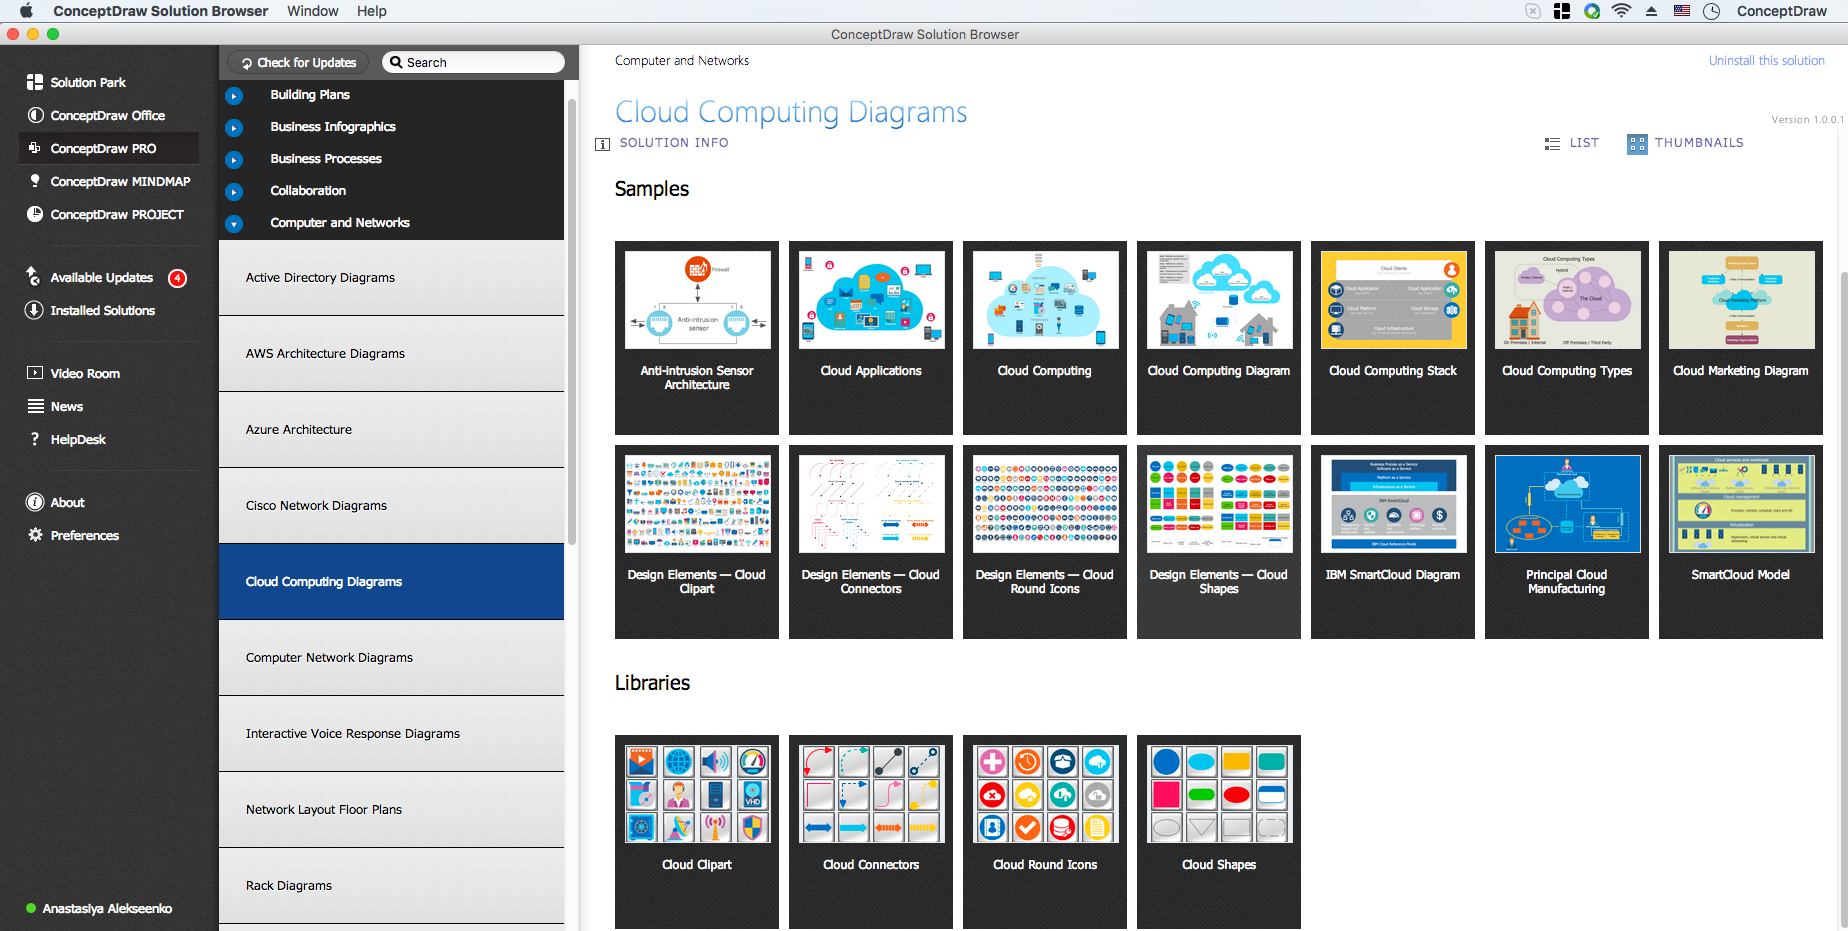 Cloud Computing Diagrams Solution in ConceptDraw STORE